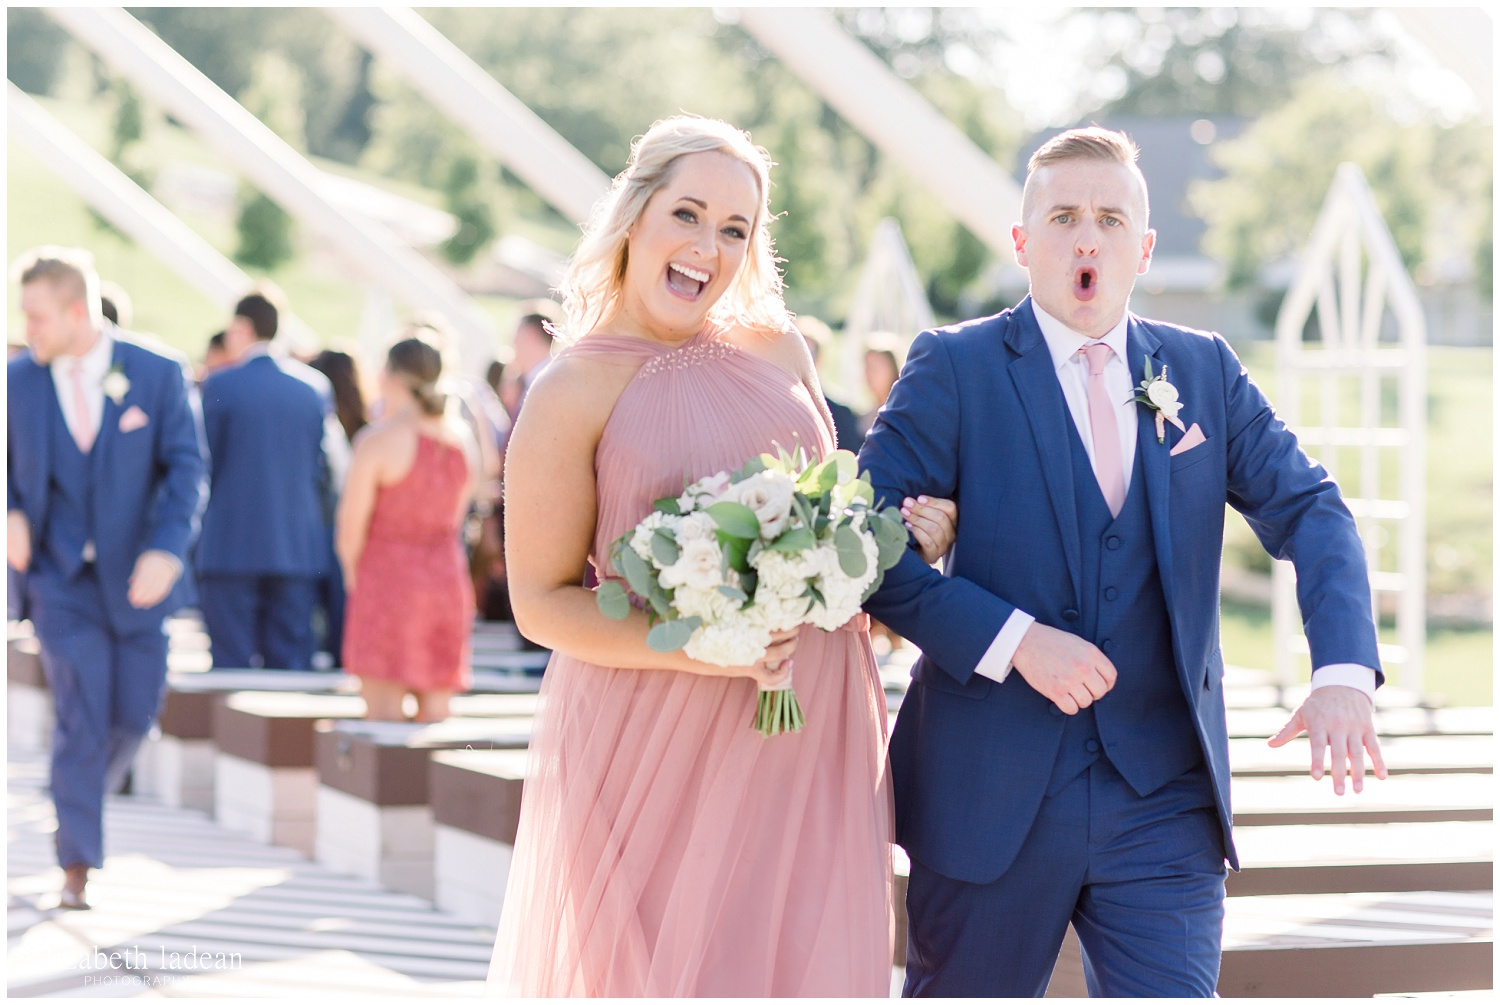 -behind-the-scenes-of-a-wedding-photographer-2018-elizabeth-ladean-photography-photo_3499.jpg